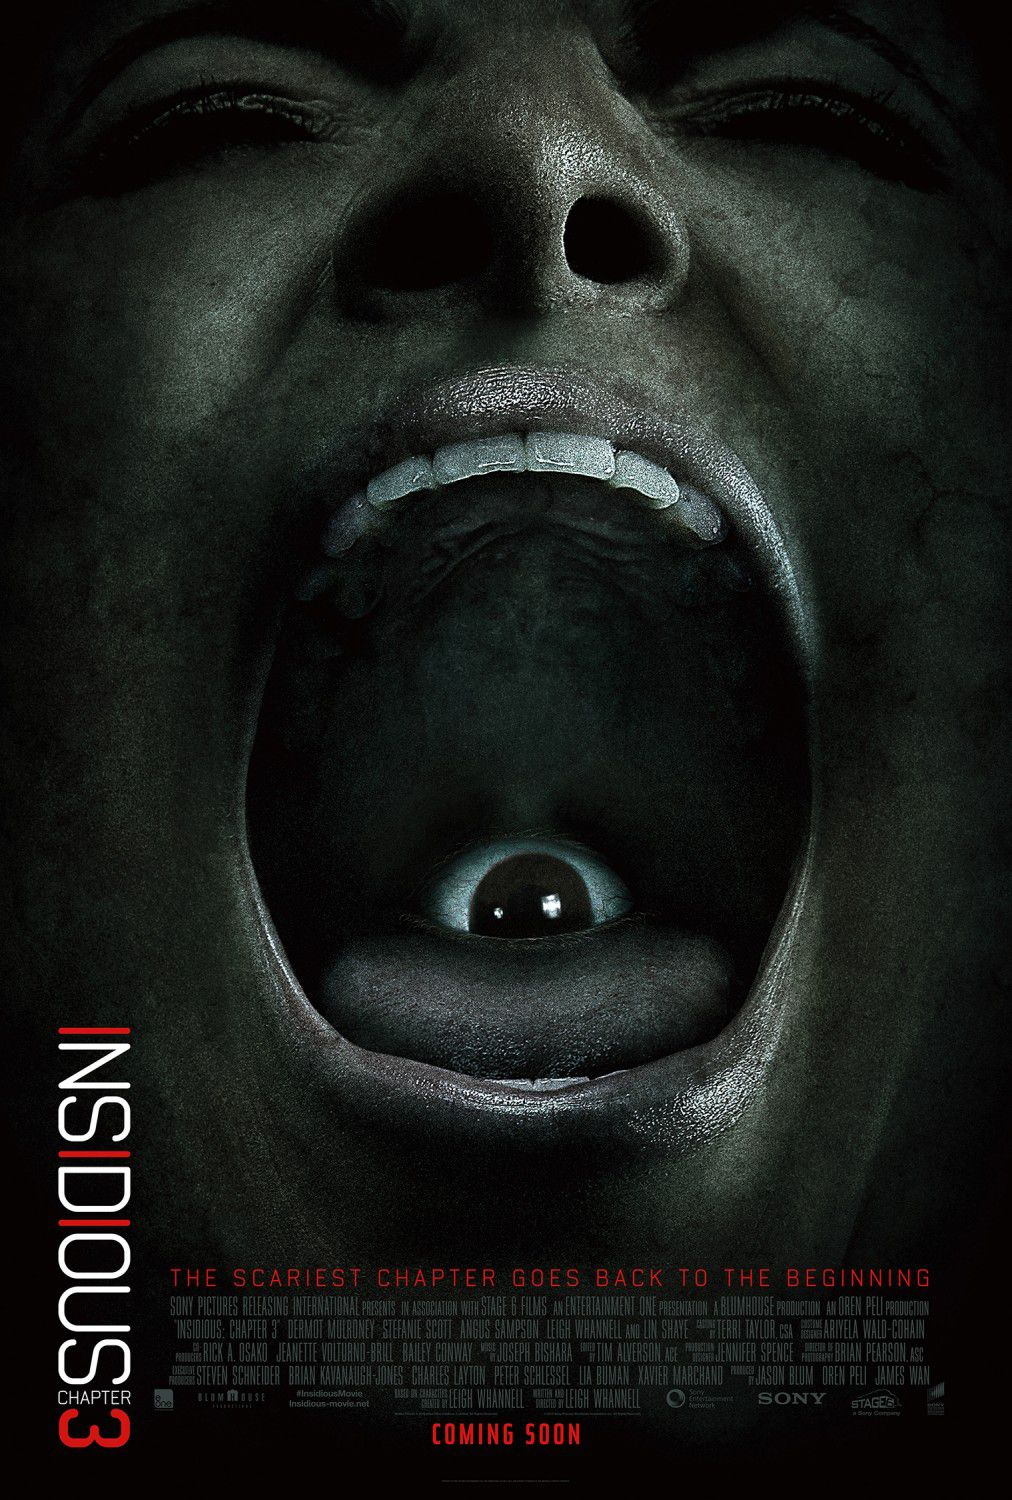 Insidious chapter 3 - horror poster - eye - the scariest chapter goes back to the beginning